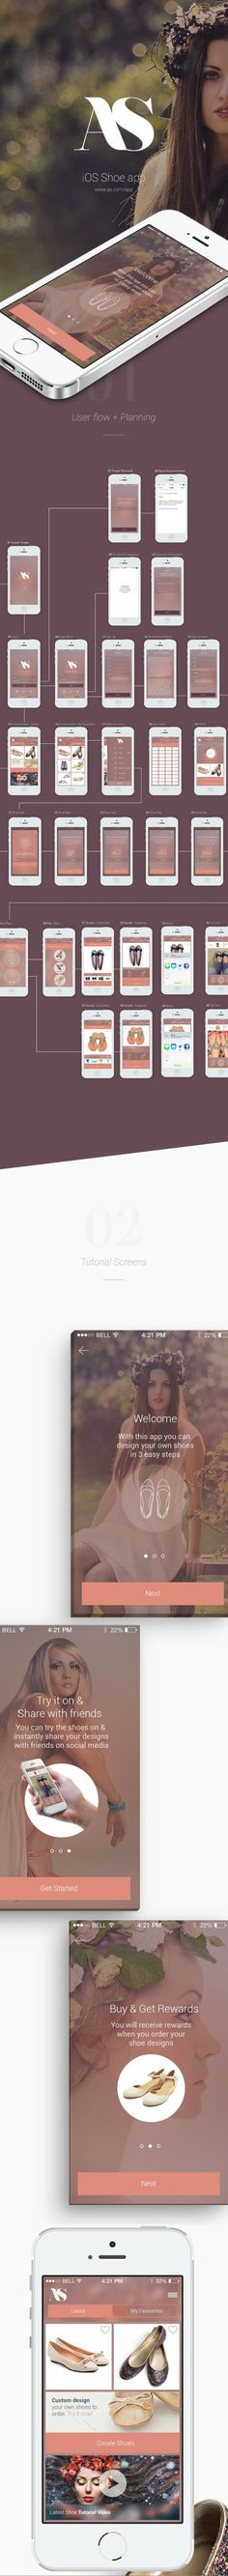 Feminine app- gorgeous colour scheme and incorporation of photography- White type on transparent background.